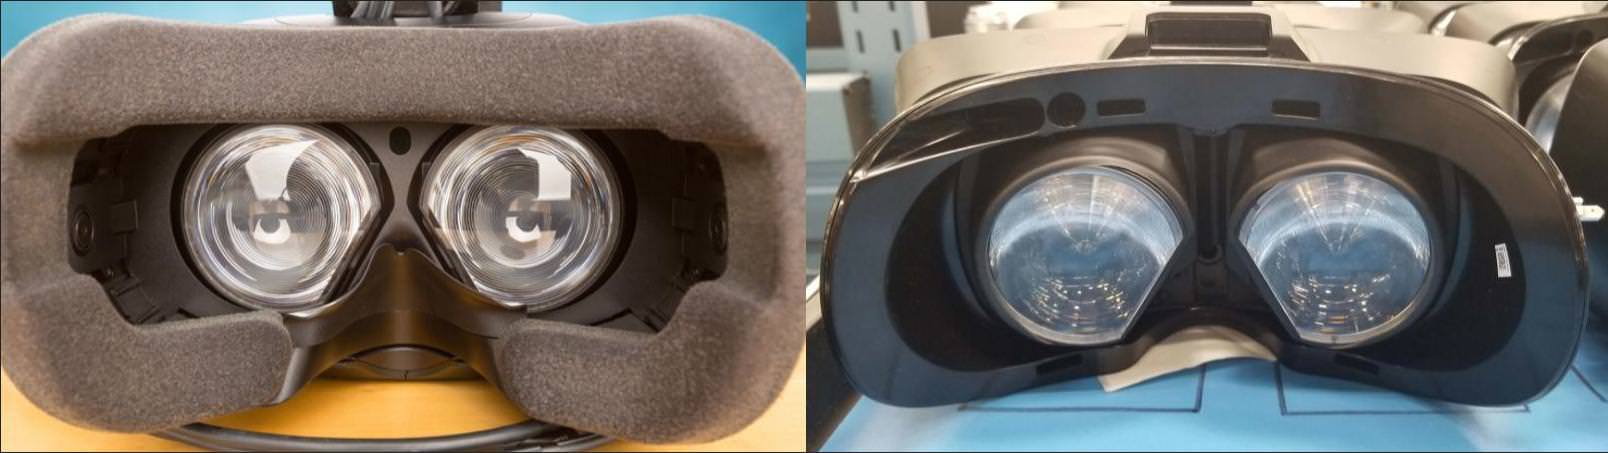 All you need to know about the leaked Valve VR headset: is